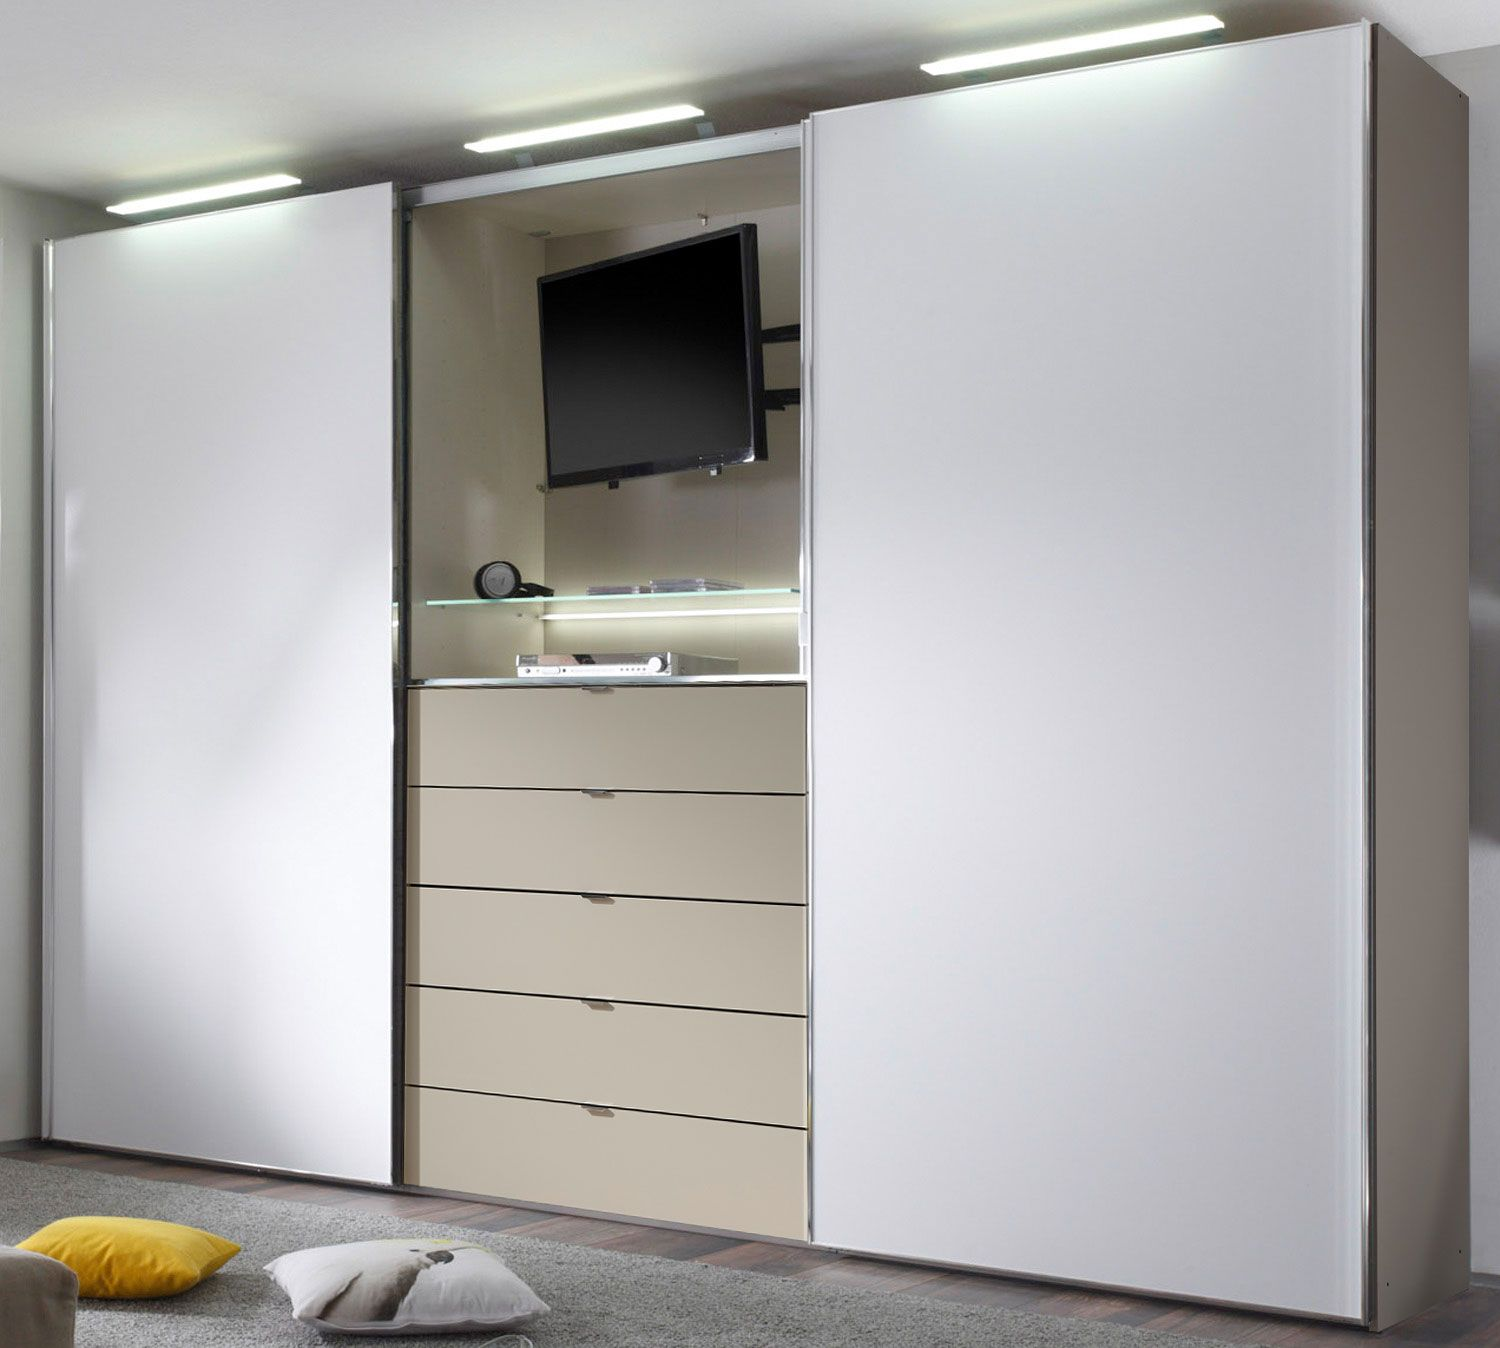 11 Inspirierend Fotos Von Schrank Fernseher Tv In Bedroom Wardrobe Design Bedroom Small Closet Organization Bedroom